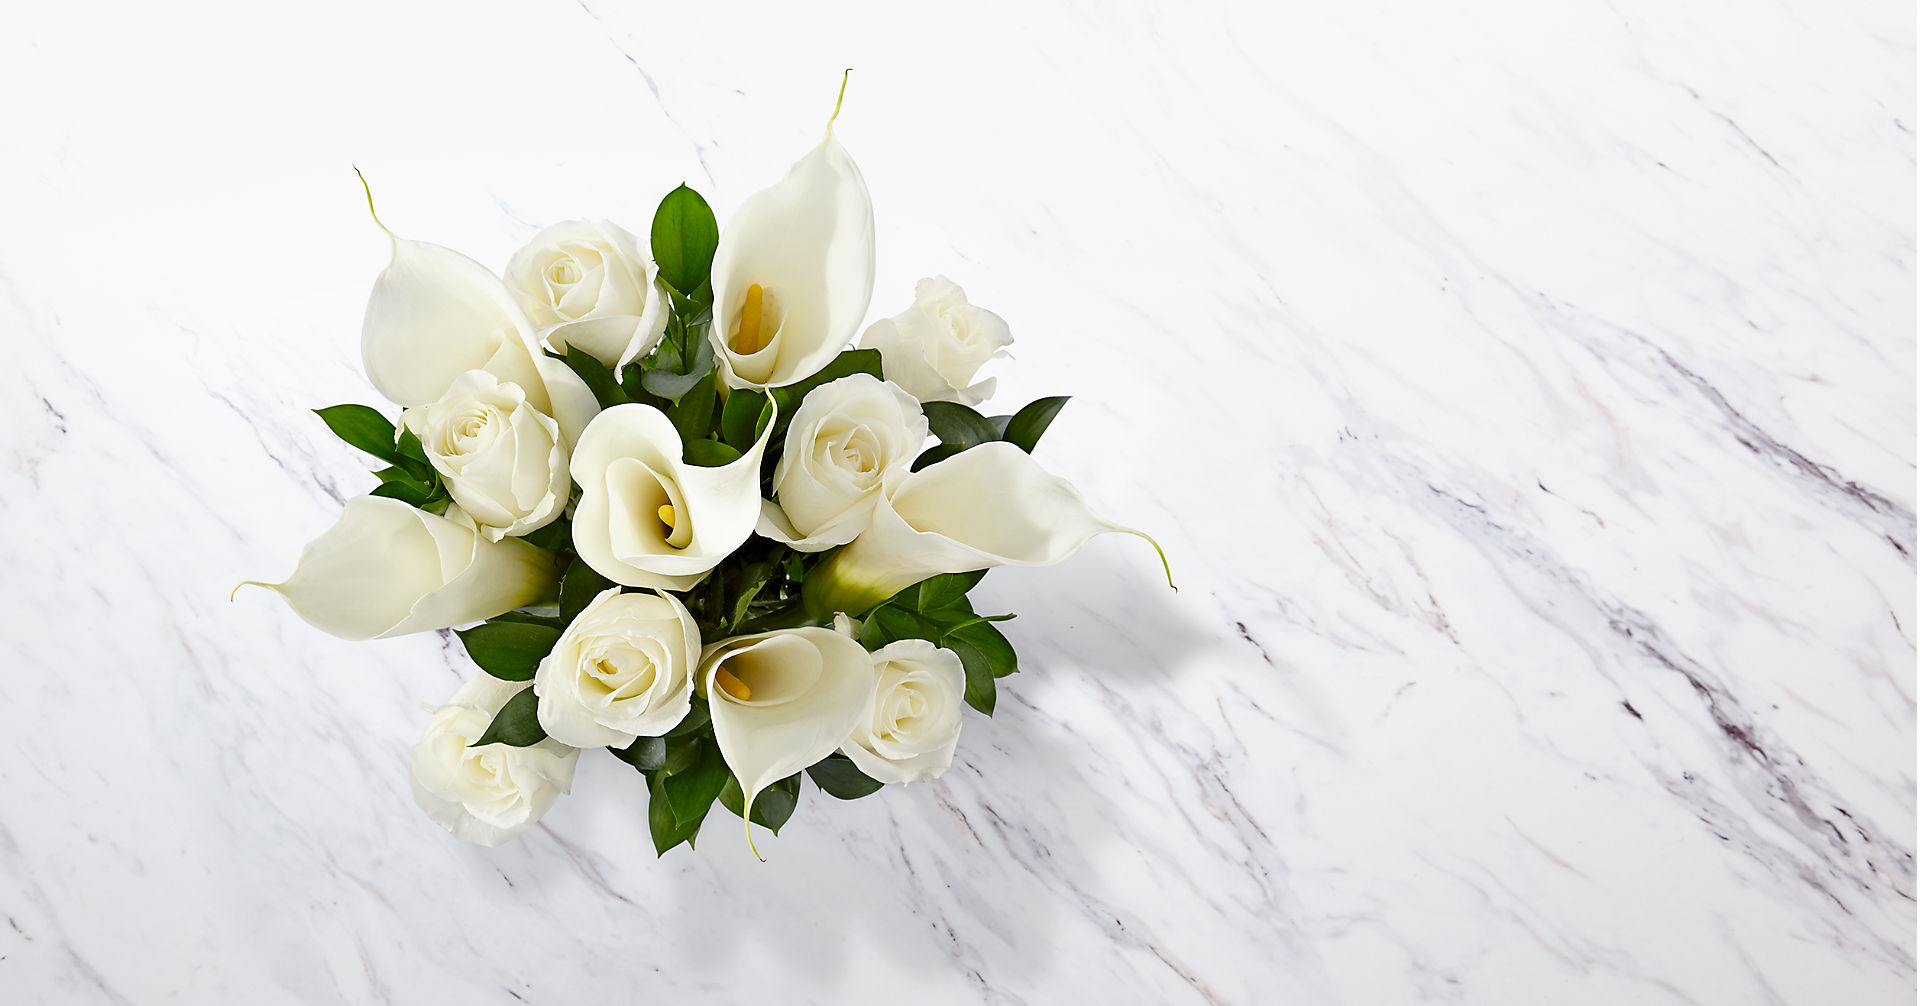 Endless Elegance Bouquet - VASE INCLUDED - Image 3 Of 5